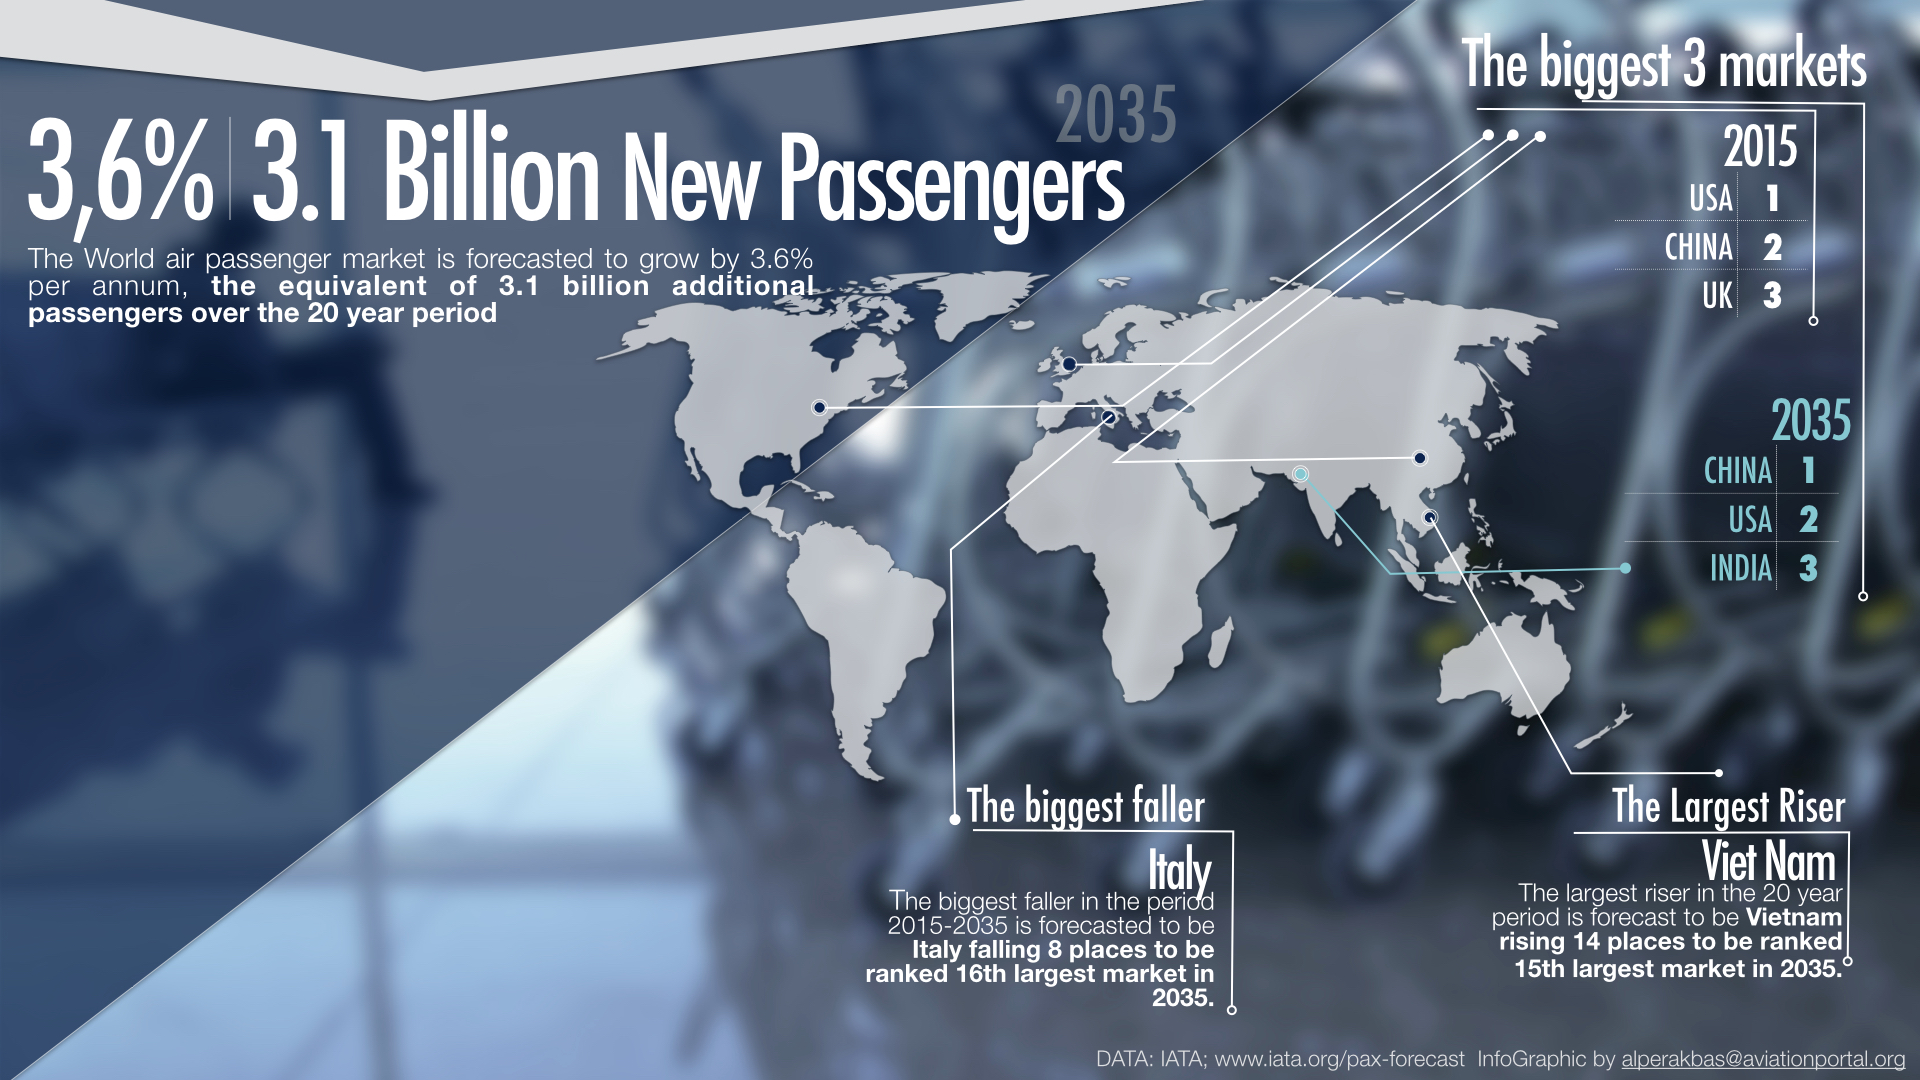 3.1 billion new passengers by 2035